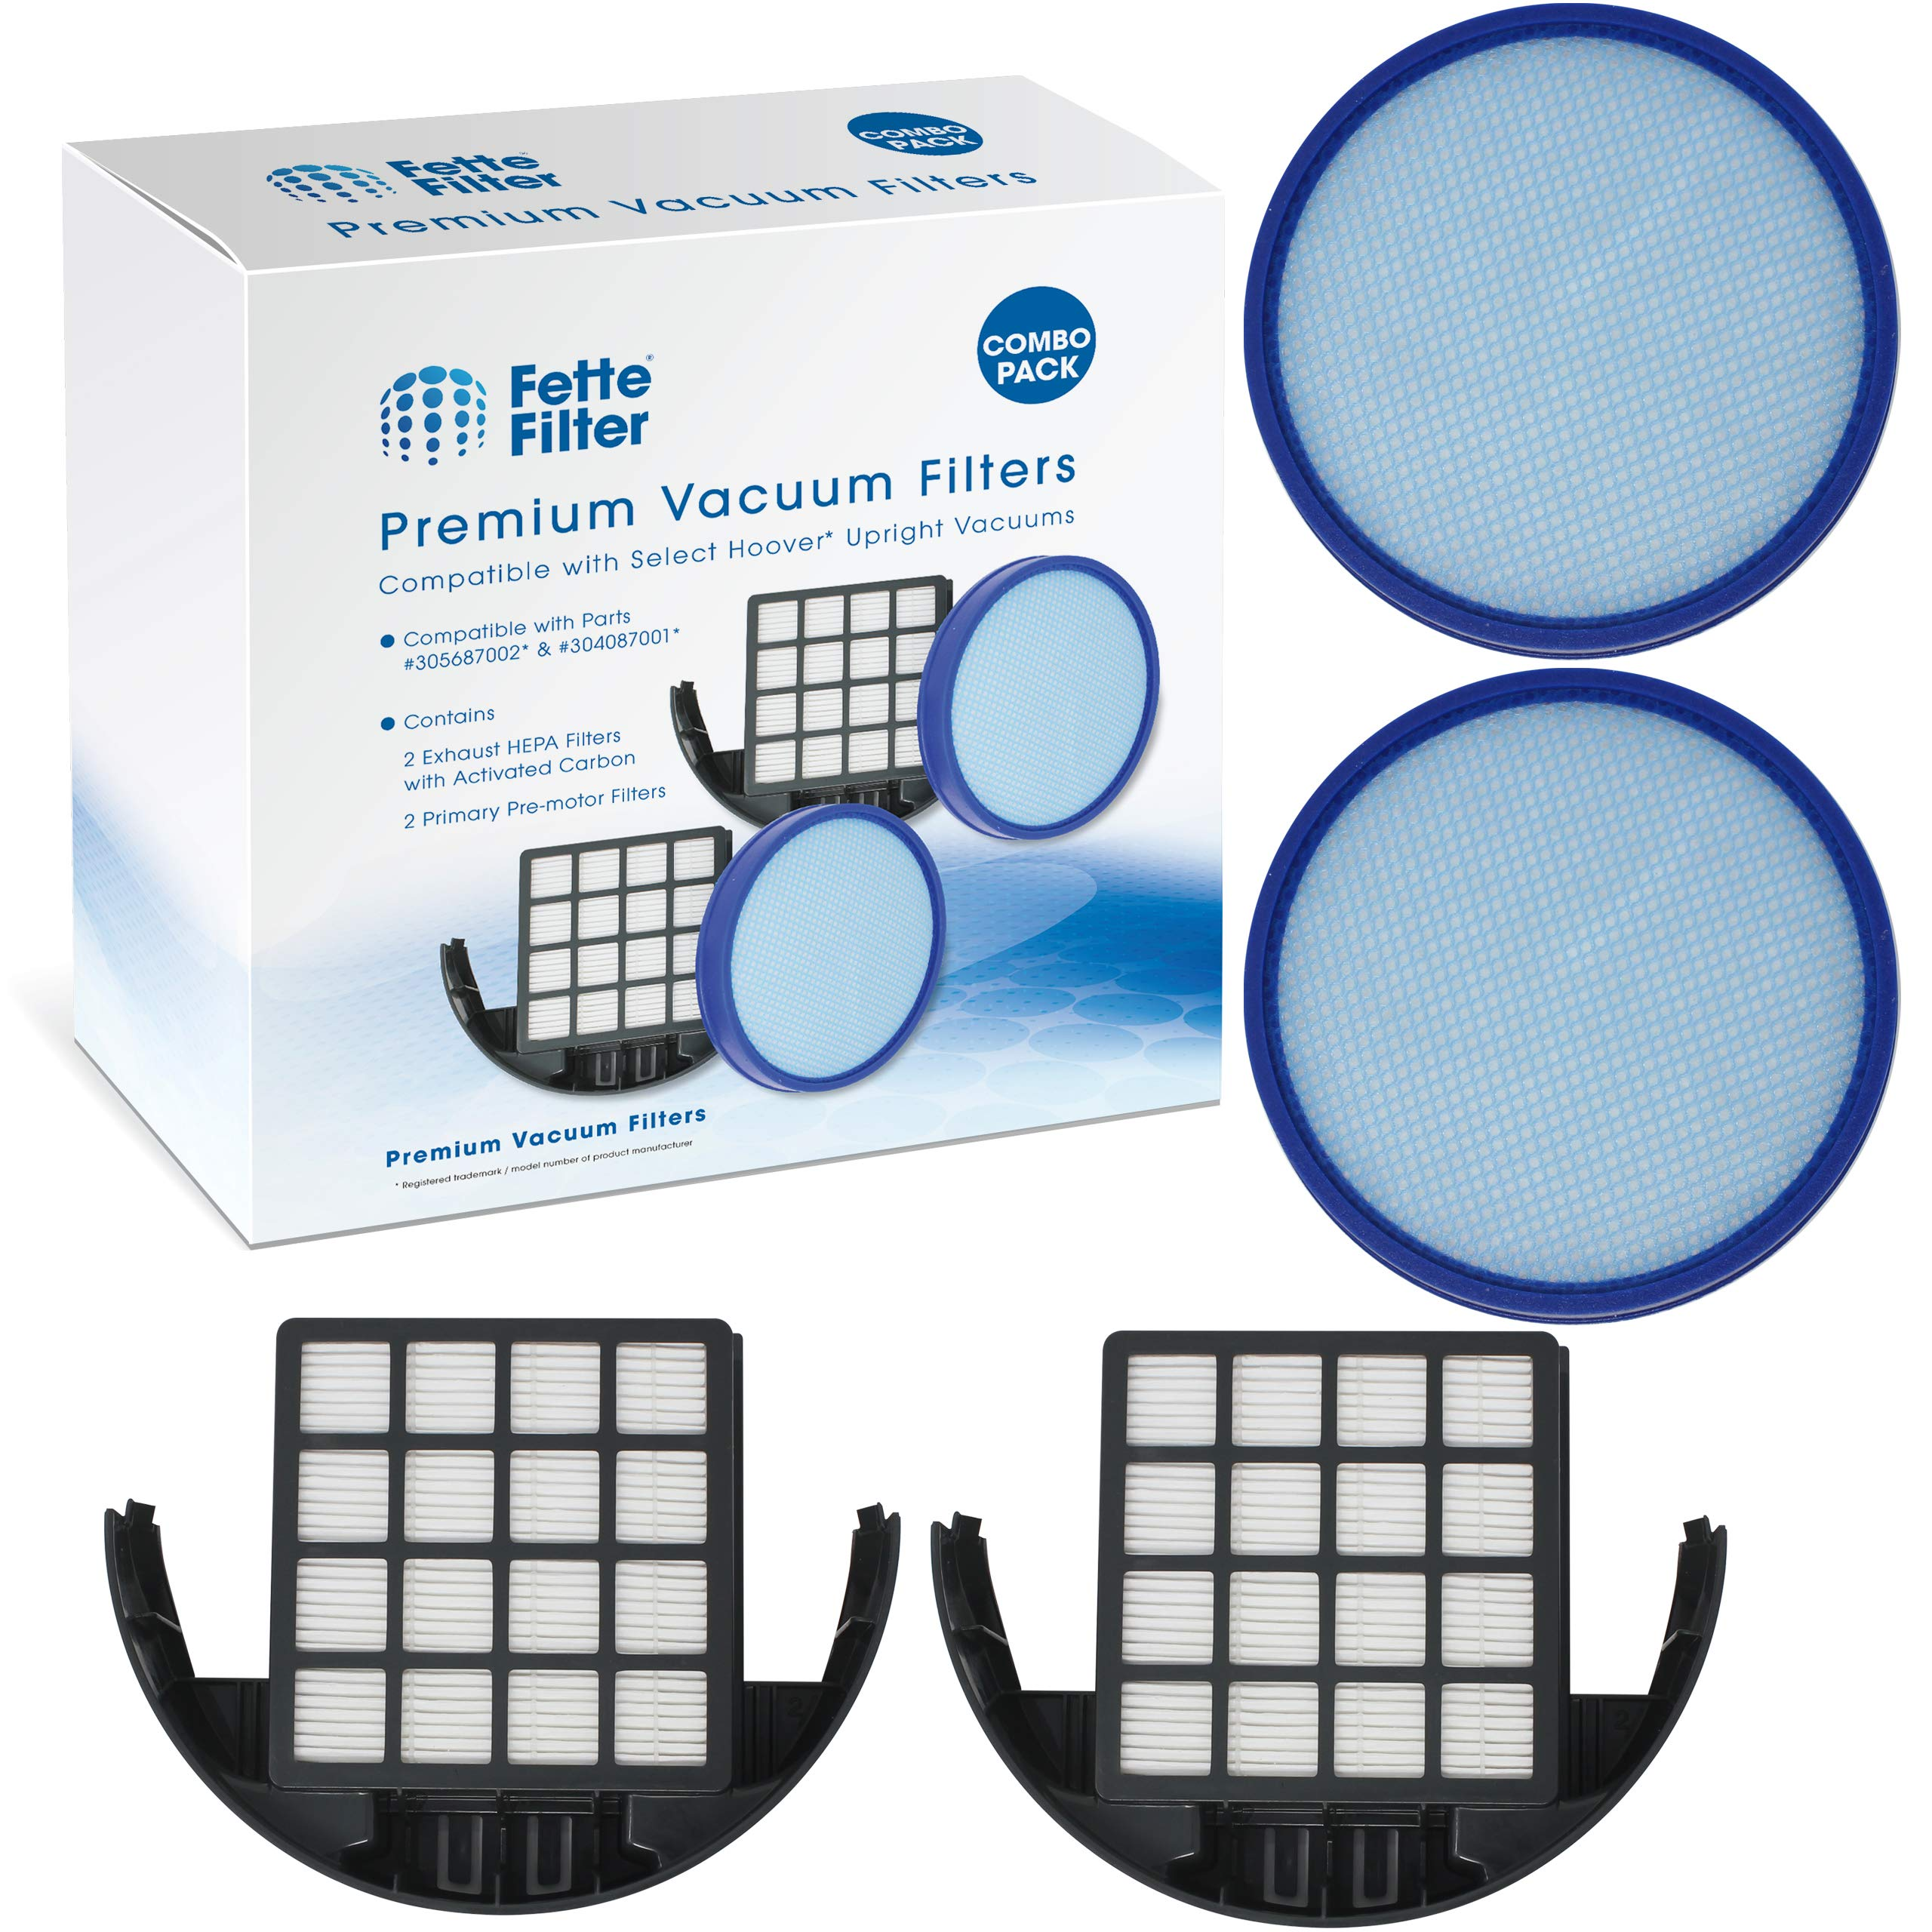 Vacuum Filter Kit Compatible with Hoover 304087001 & 305687002 WindTunnel (Pack of 2) by Fette Filter